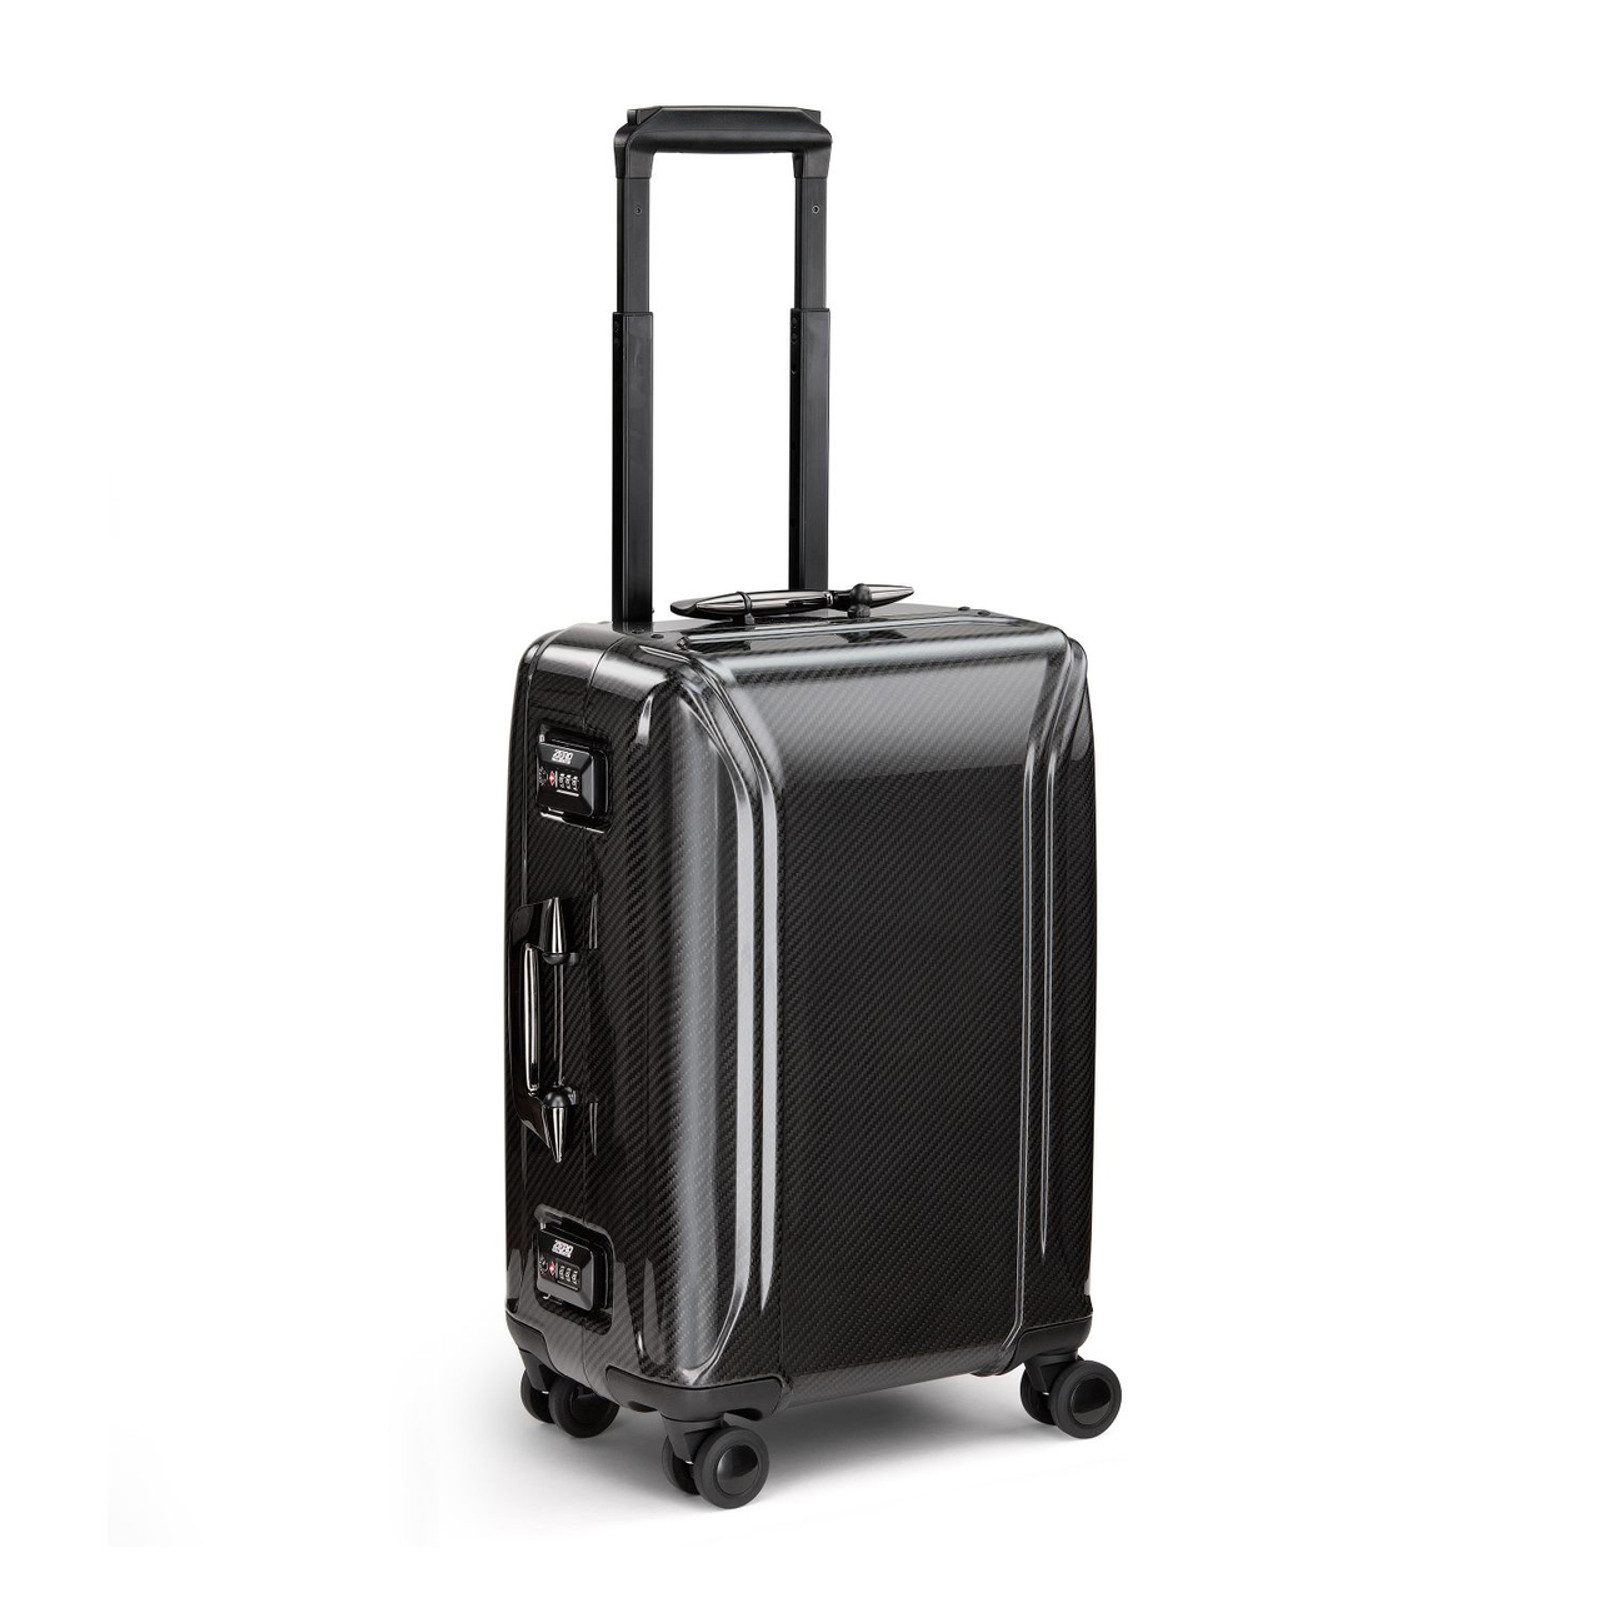 "Zero Halliburton 21"" Carbon Fibre Carry On - Part of the NEW Classic II Collection"